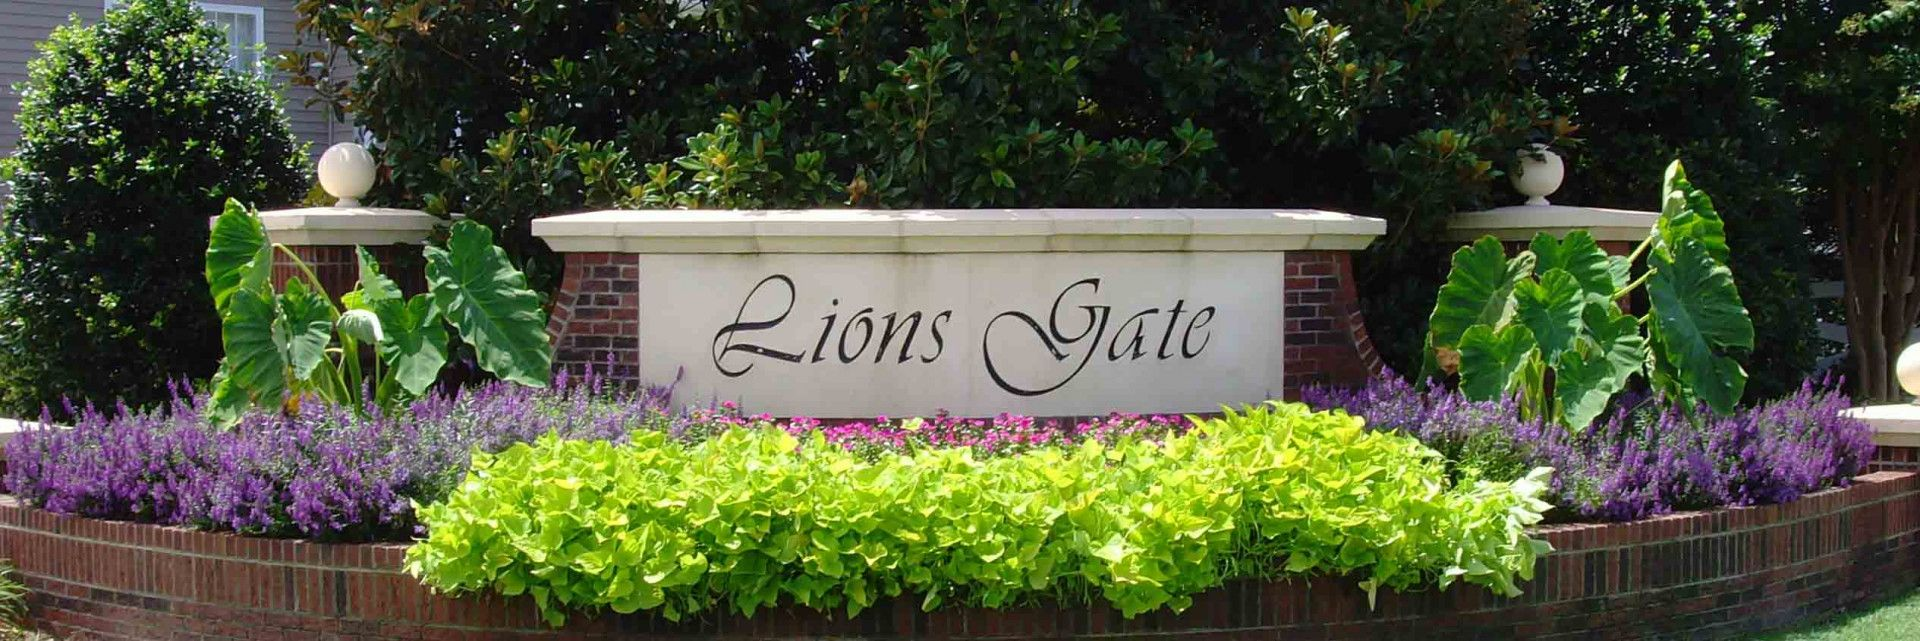 Front Entrance of Lions Gate with flowers